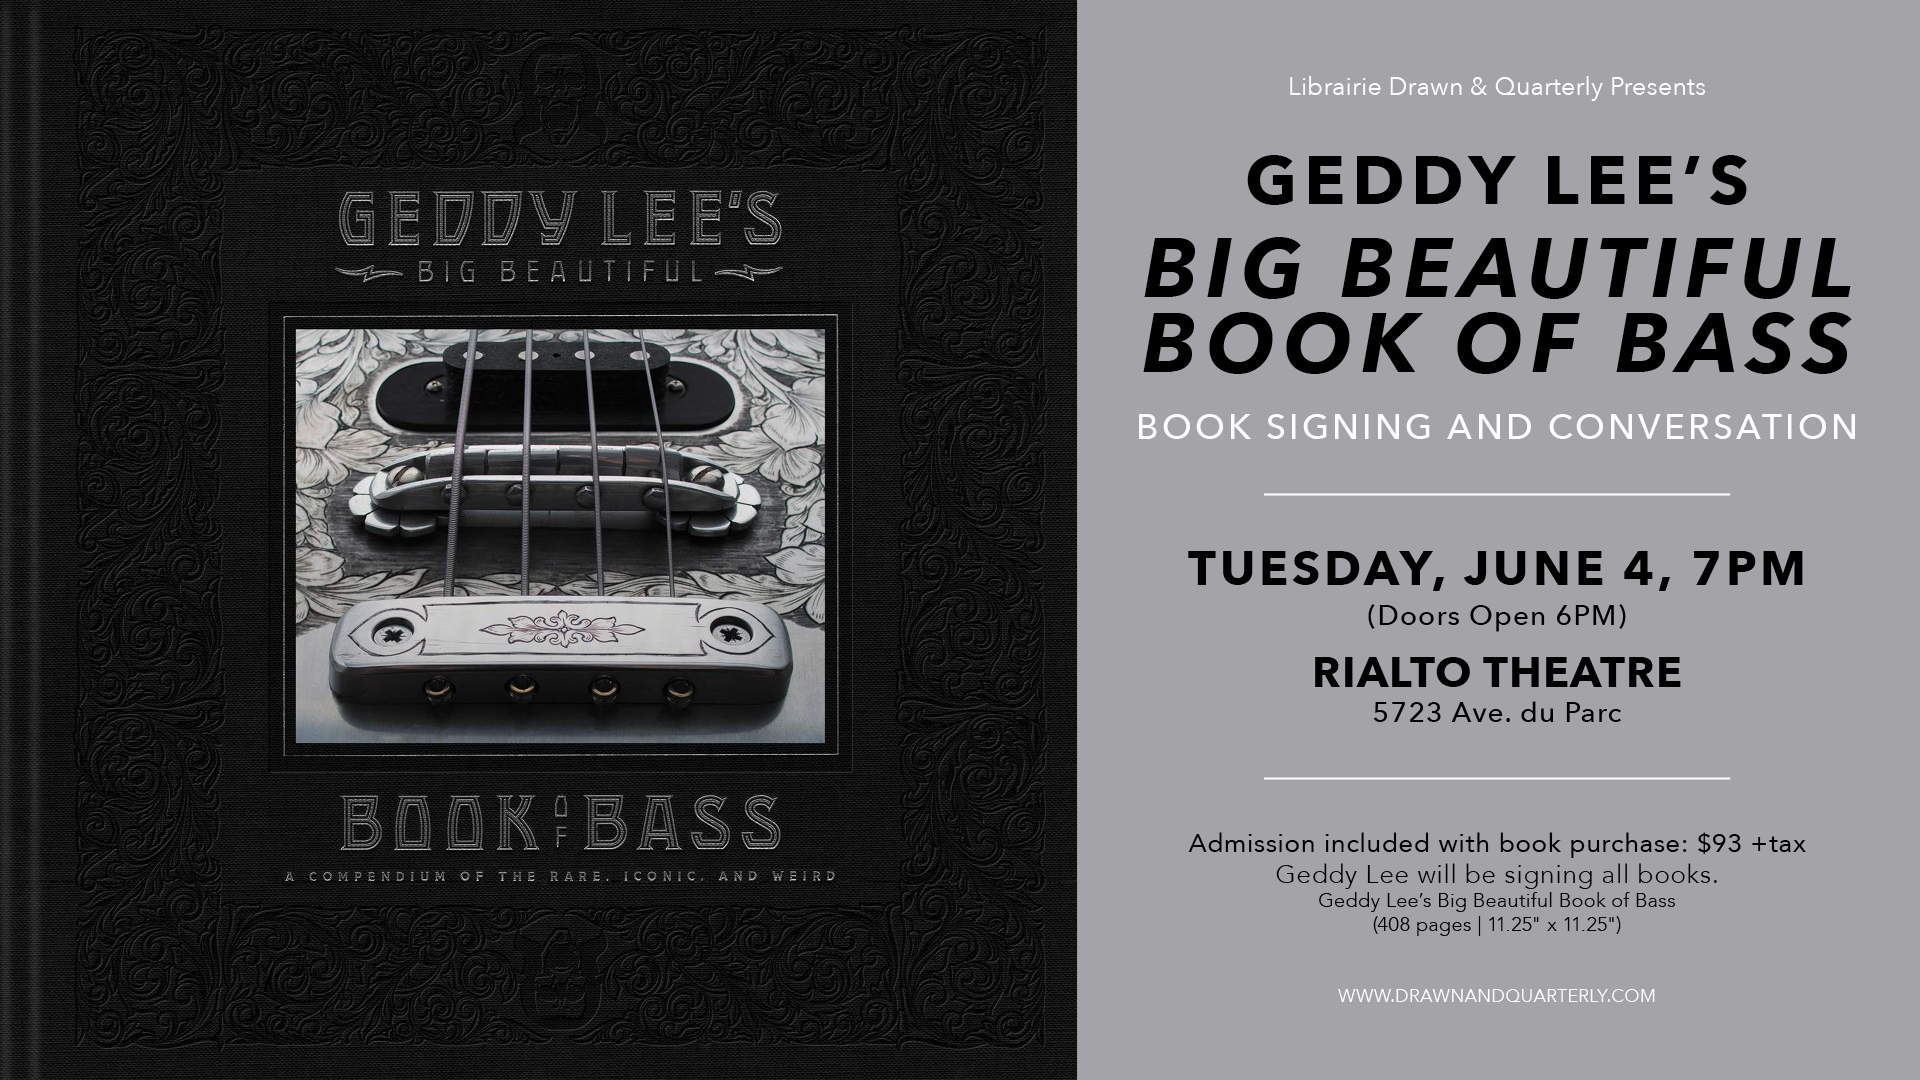 Pop Up Book Fair Montreal Geddy Lee Launches Geddy Lees Big Beautiful Book Of Bass